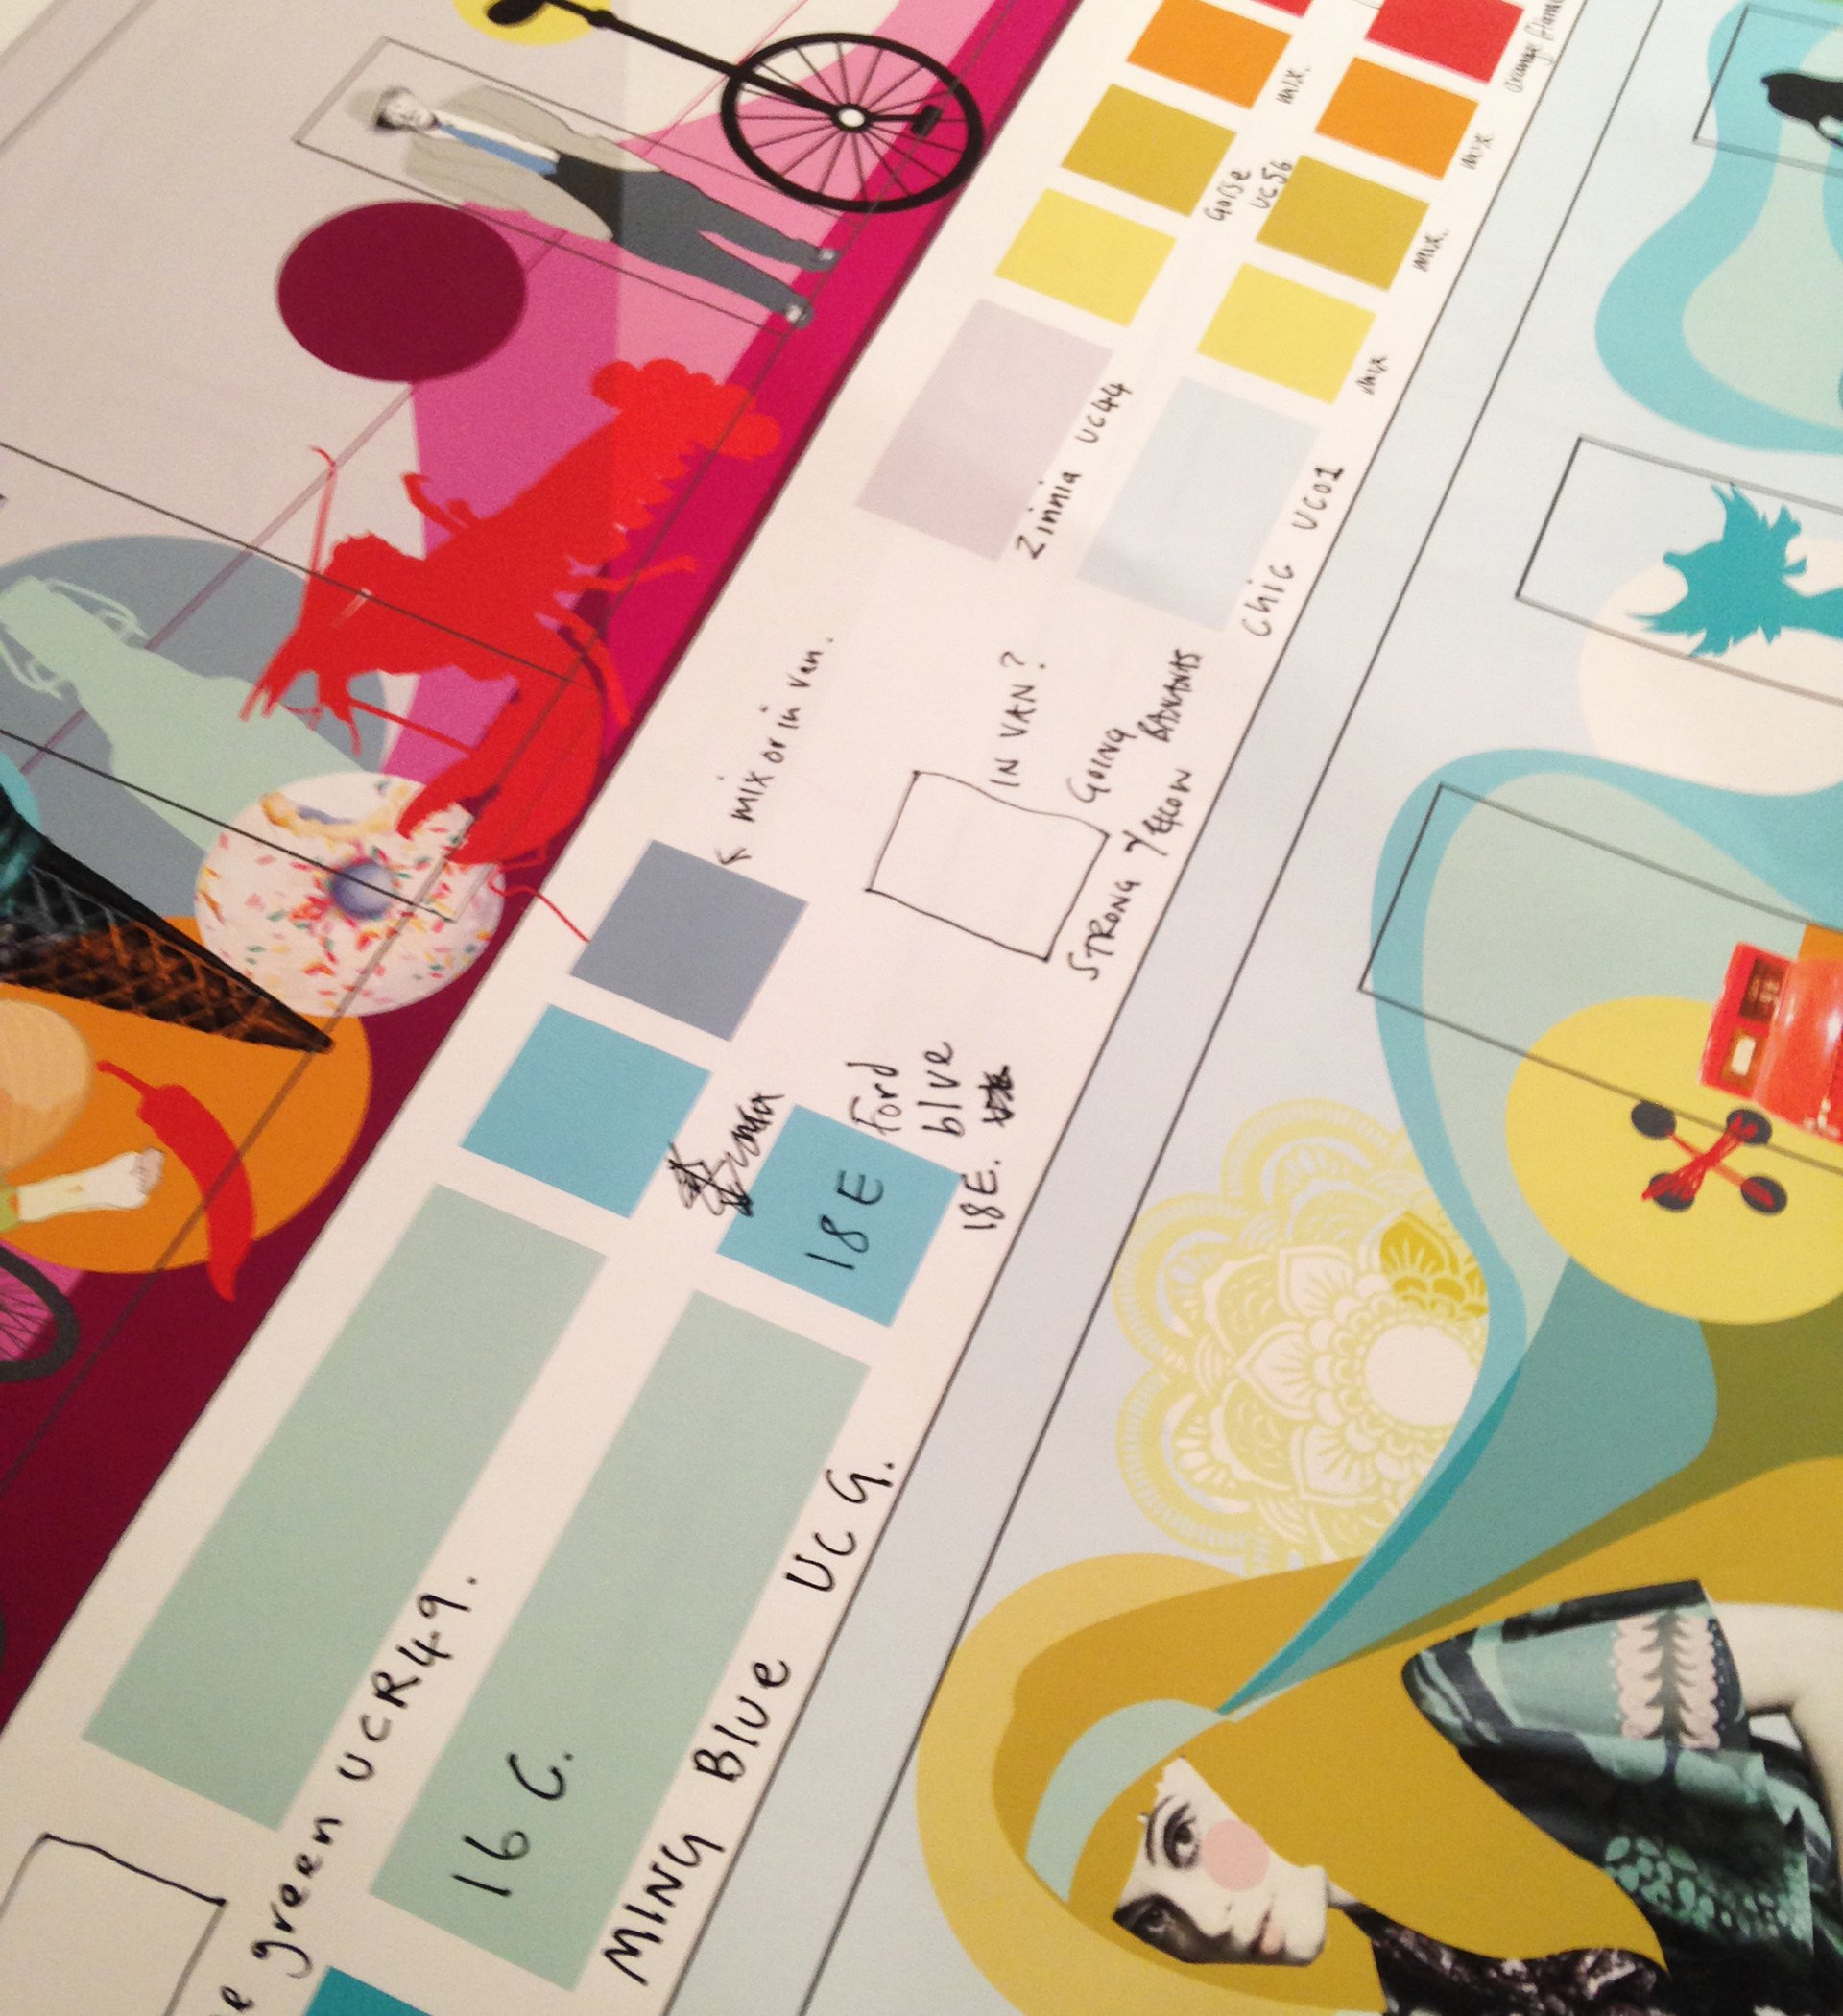 Colour chart and planning for Gifford Park mural